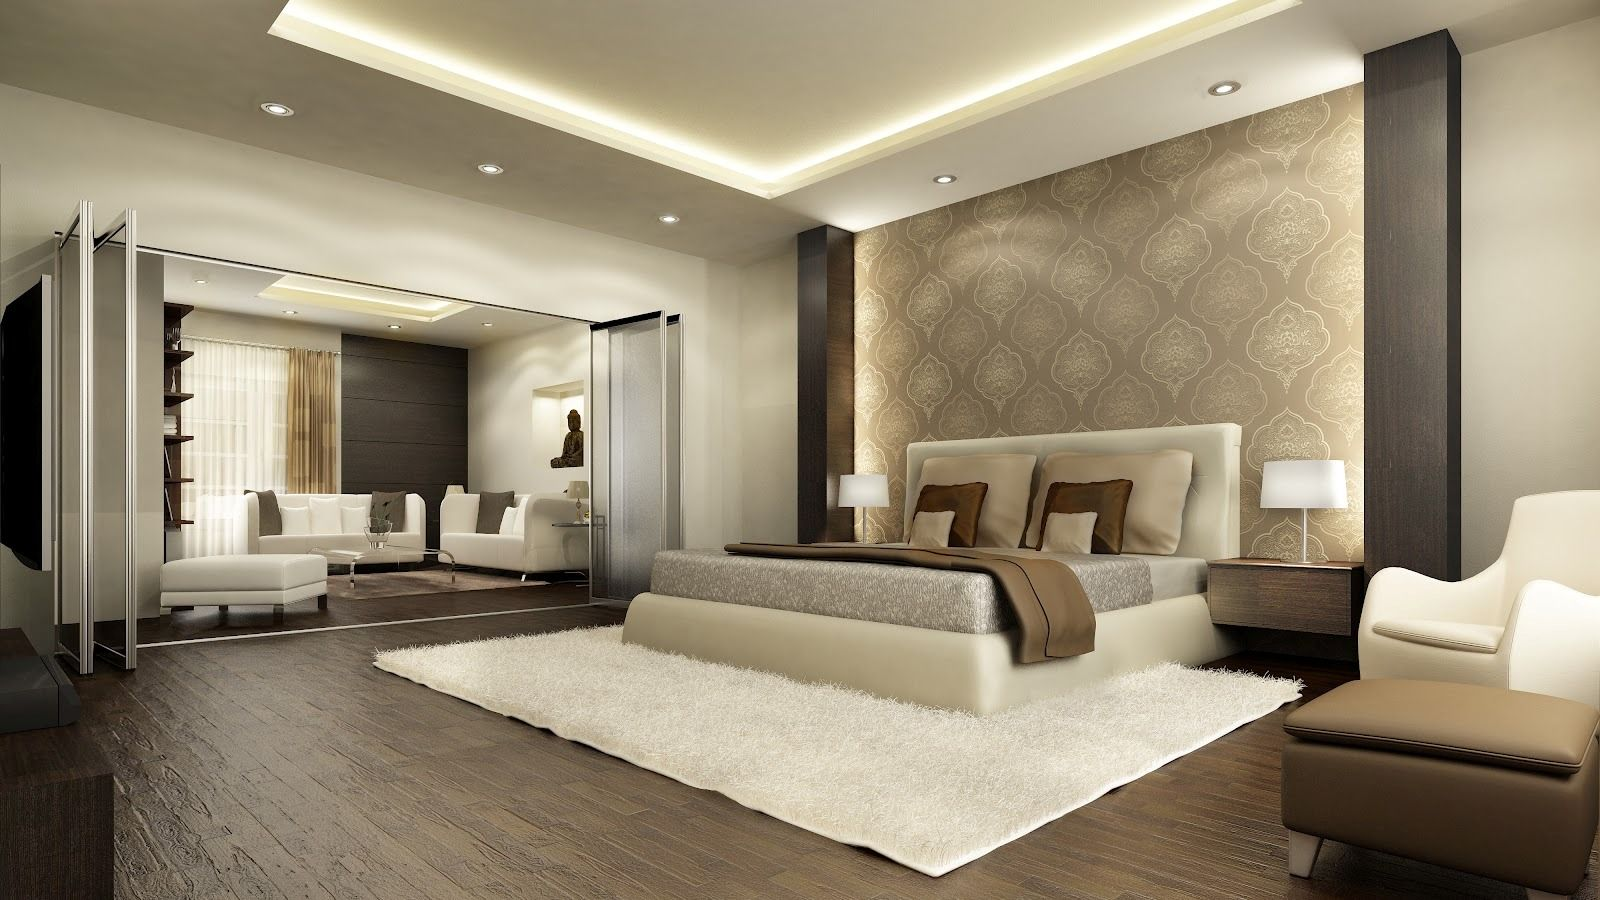 Bedroom Modern Design Ideas For Small Bedrooms Luxurious Master Bed Your Creation